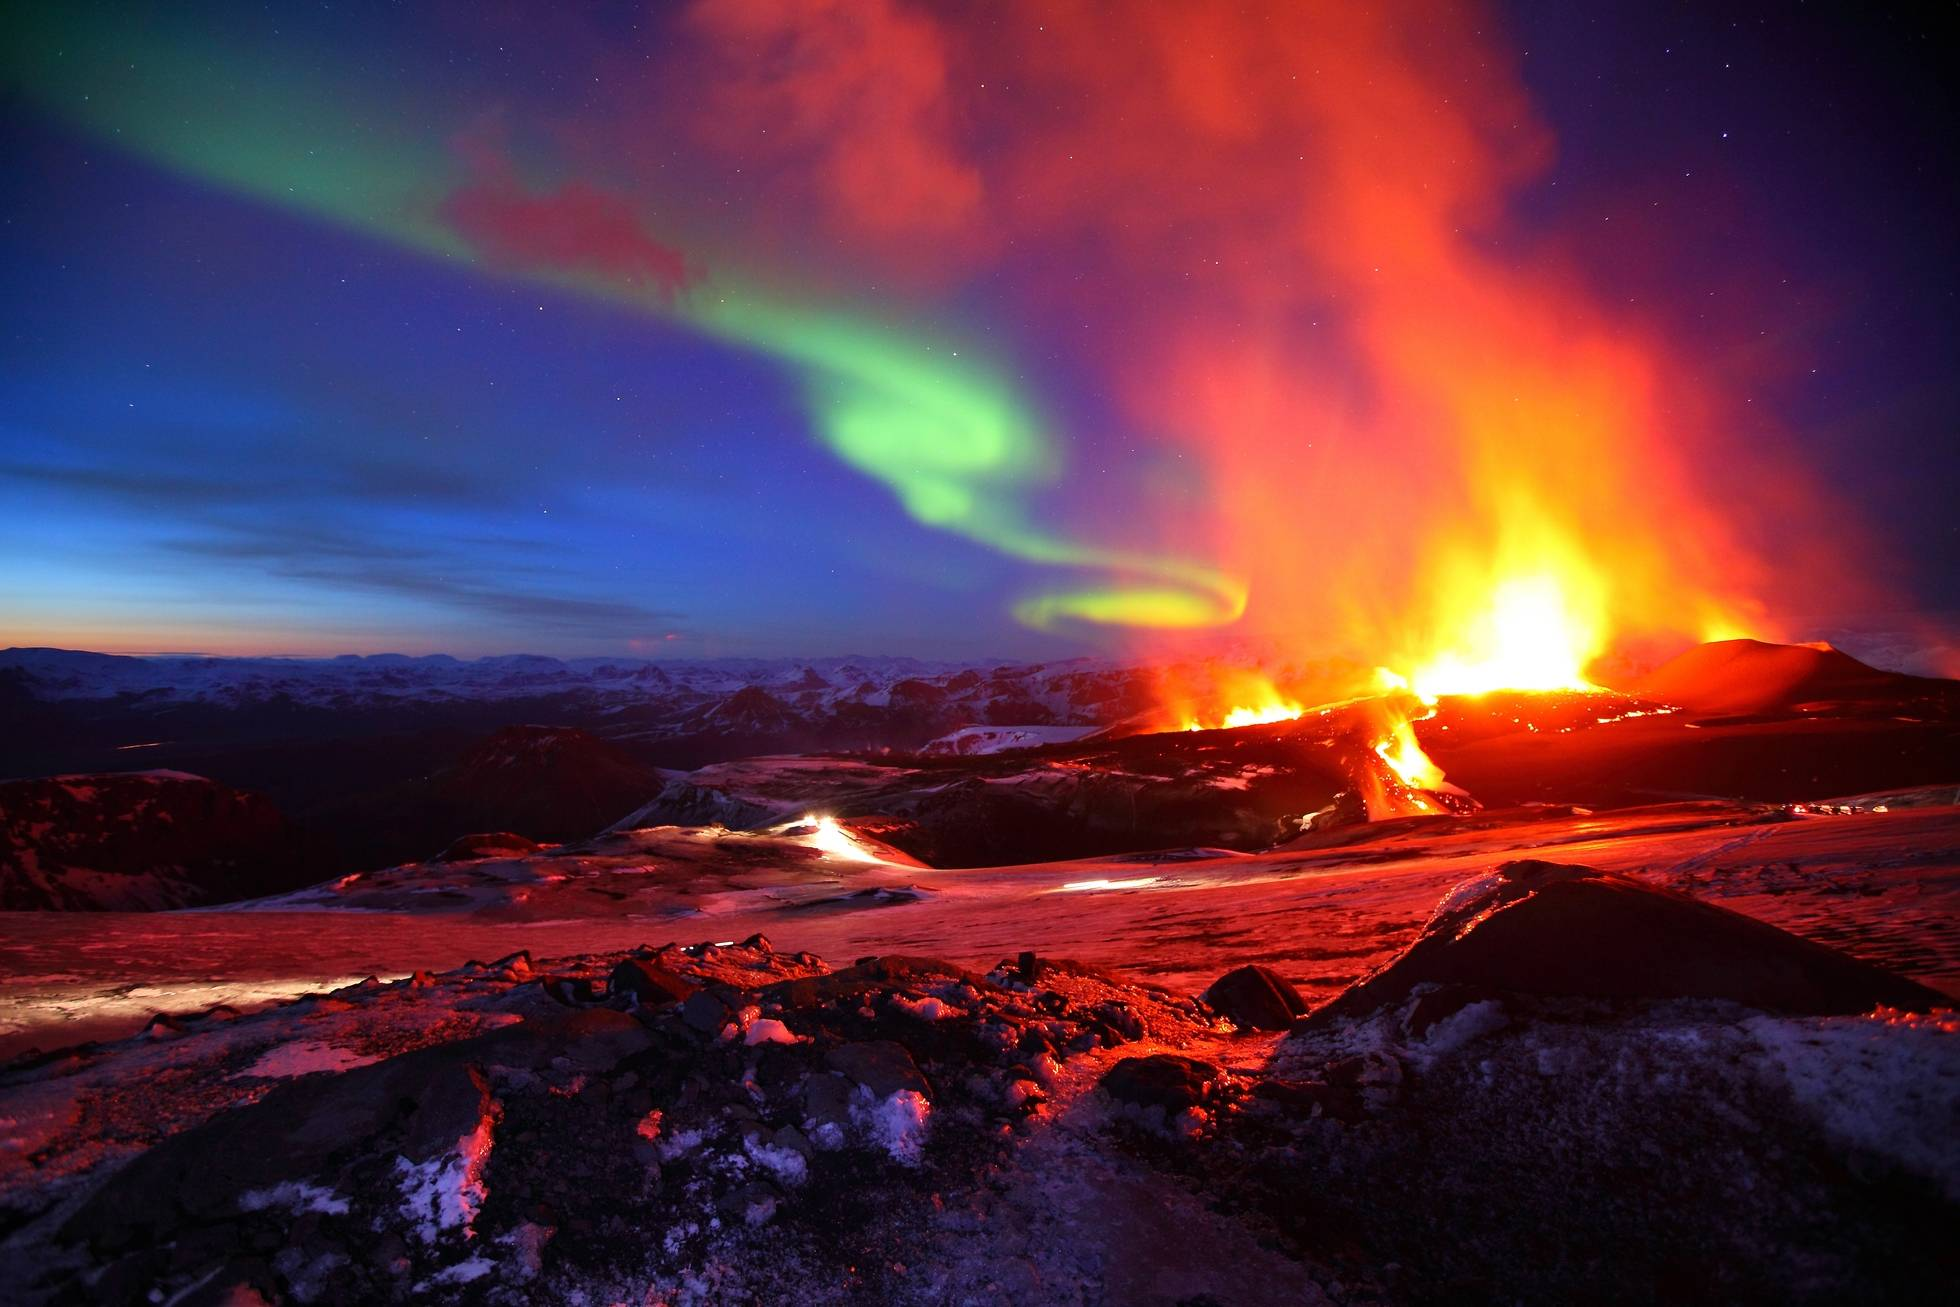 Iceland Volcano Wallpapers - Top Free Iceland Volcano Backgrounds -  WallpaperAccess